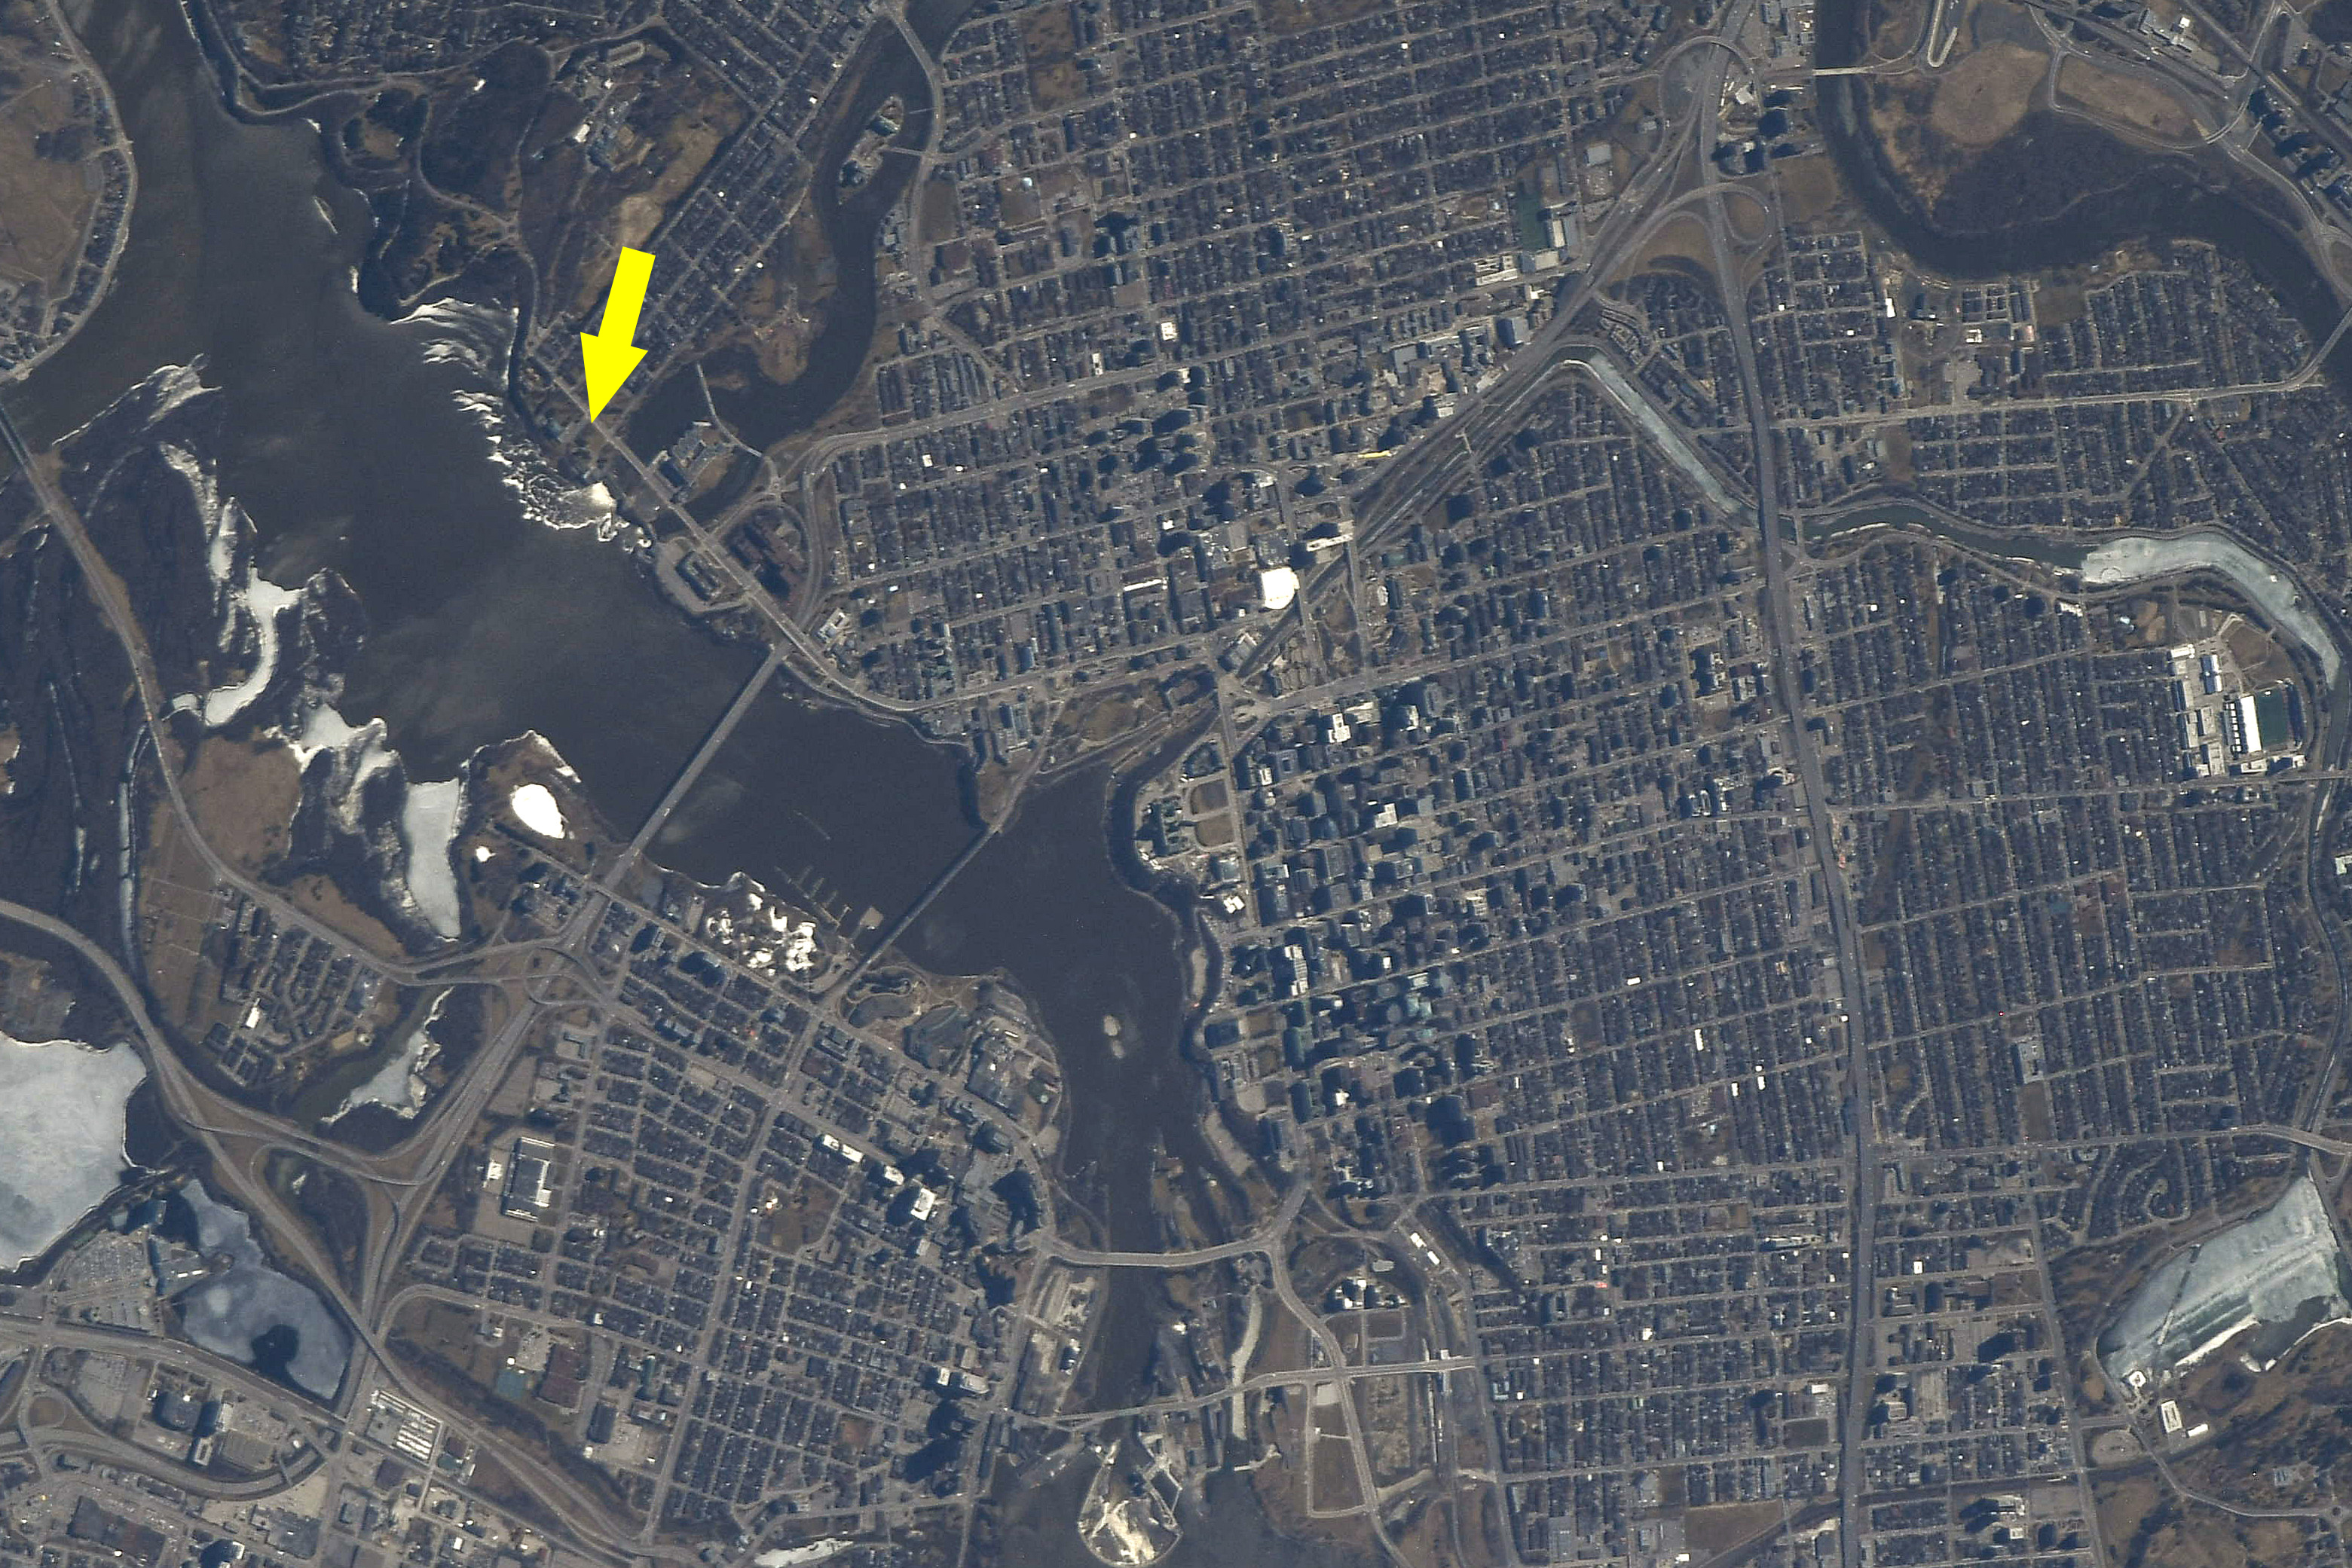 View of Ottawa from orbit with 50 Sussex Drive indicated by a yellow arrow